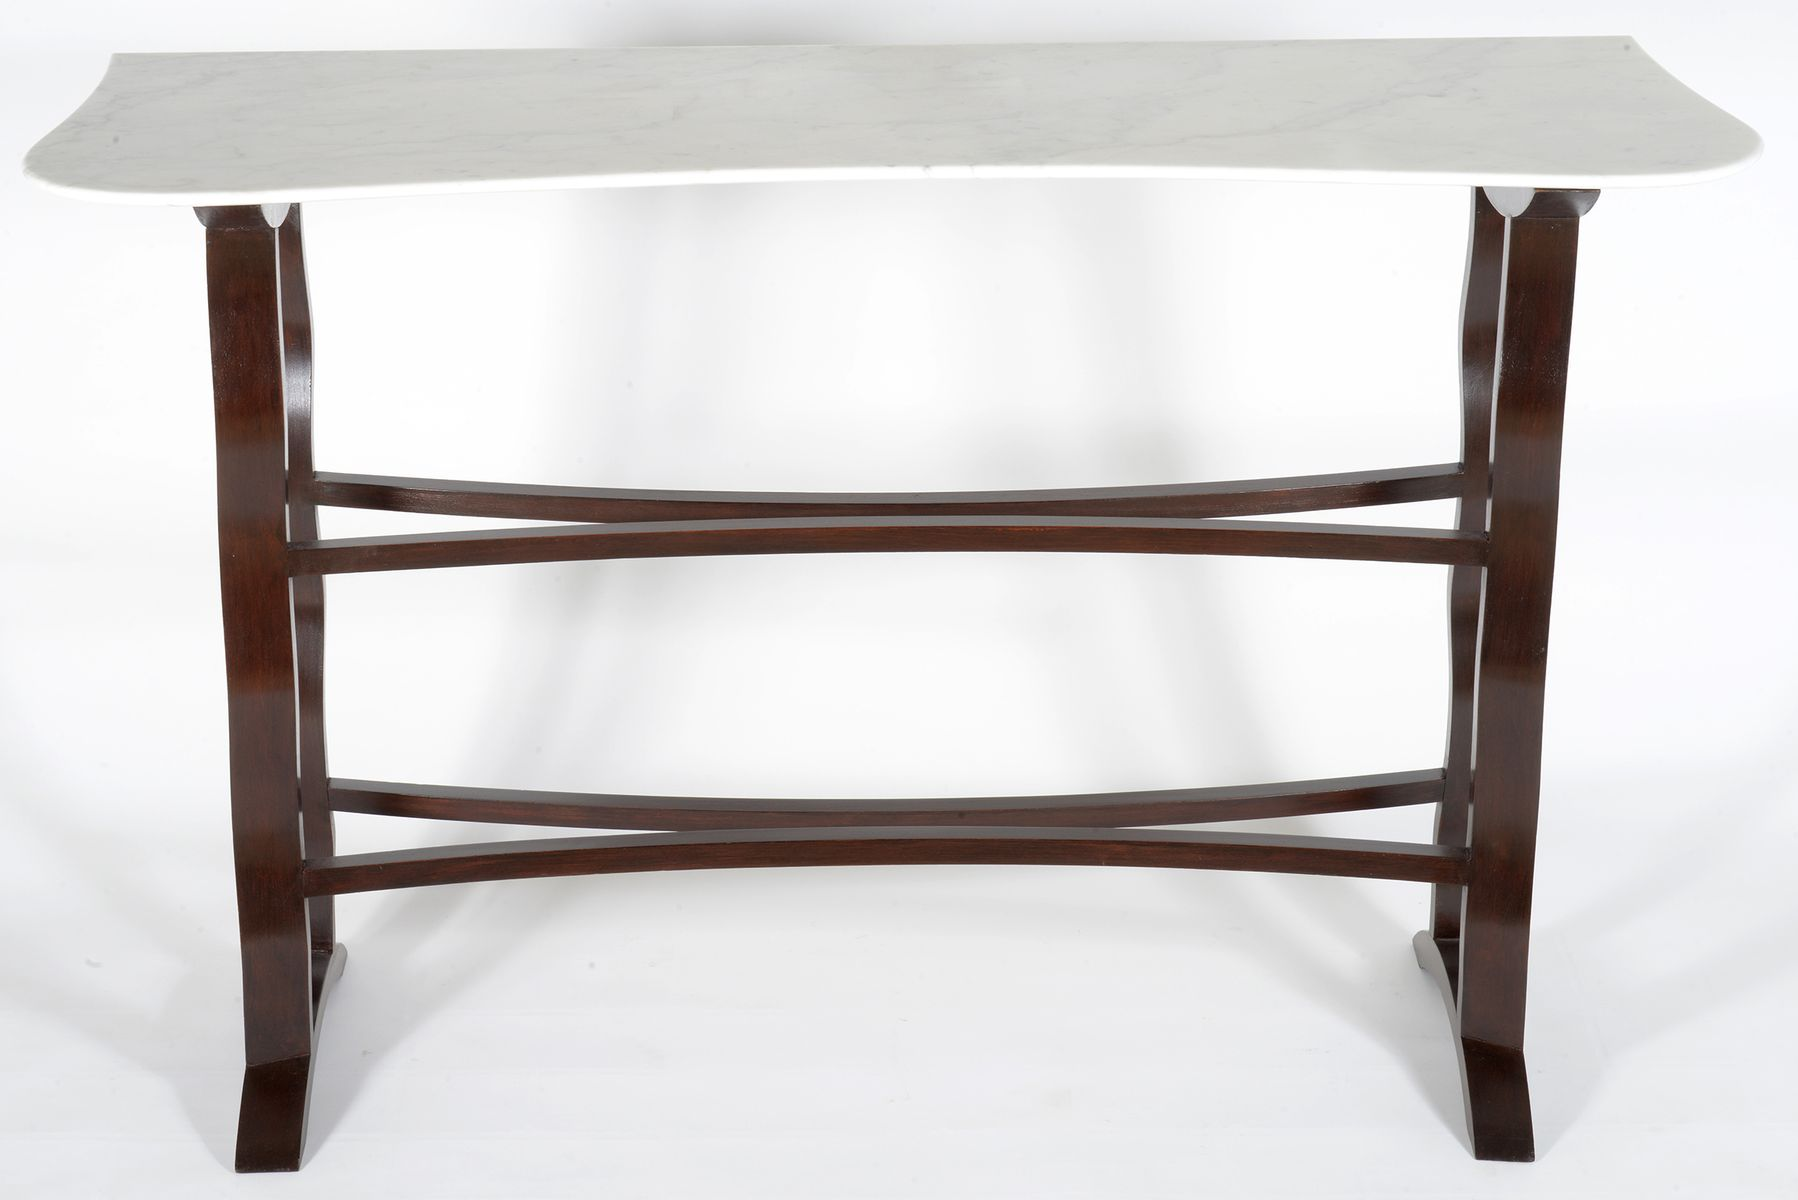 Mid century carrara marble console table 1950s for sale at pamono mid century carrara marble console table 1950s geotapseo Choice Image